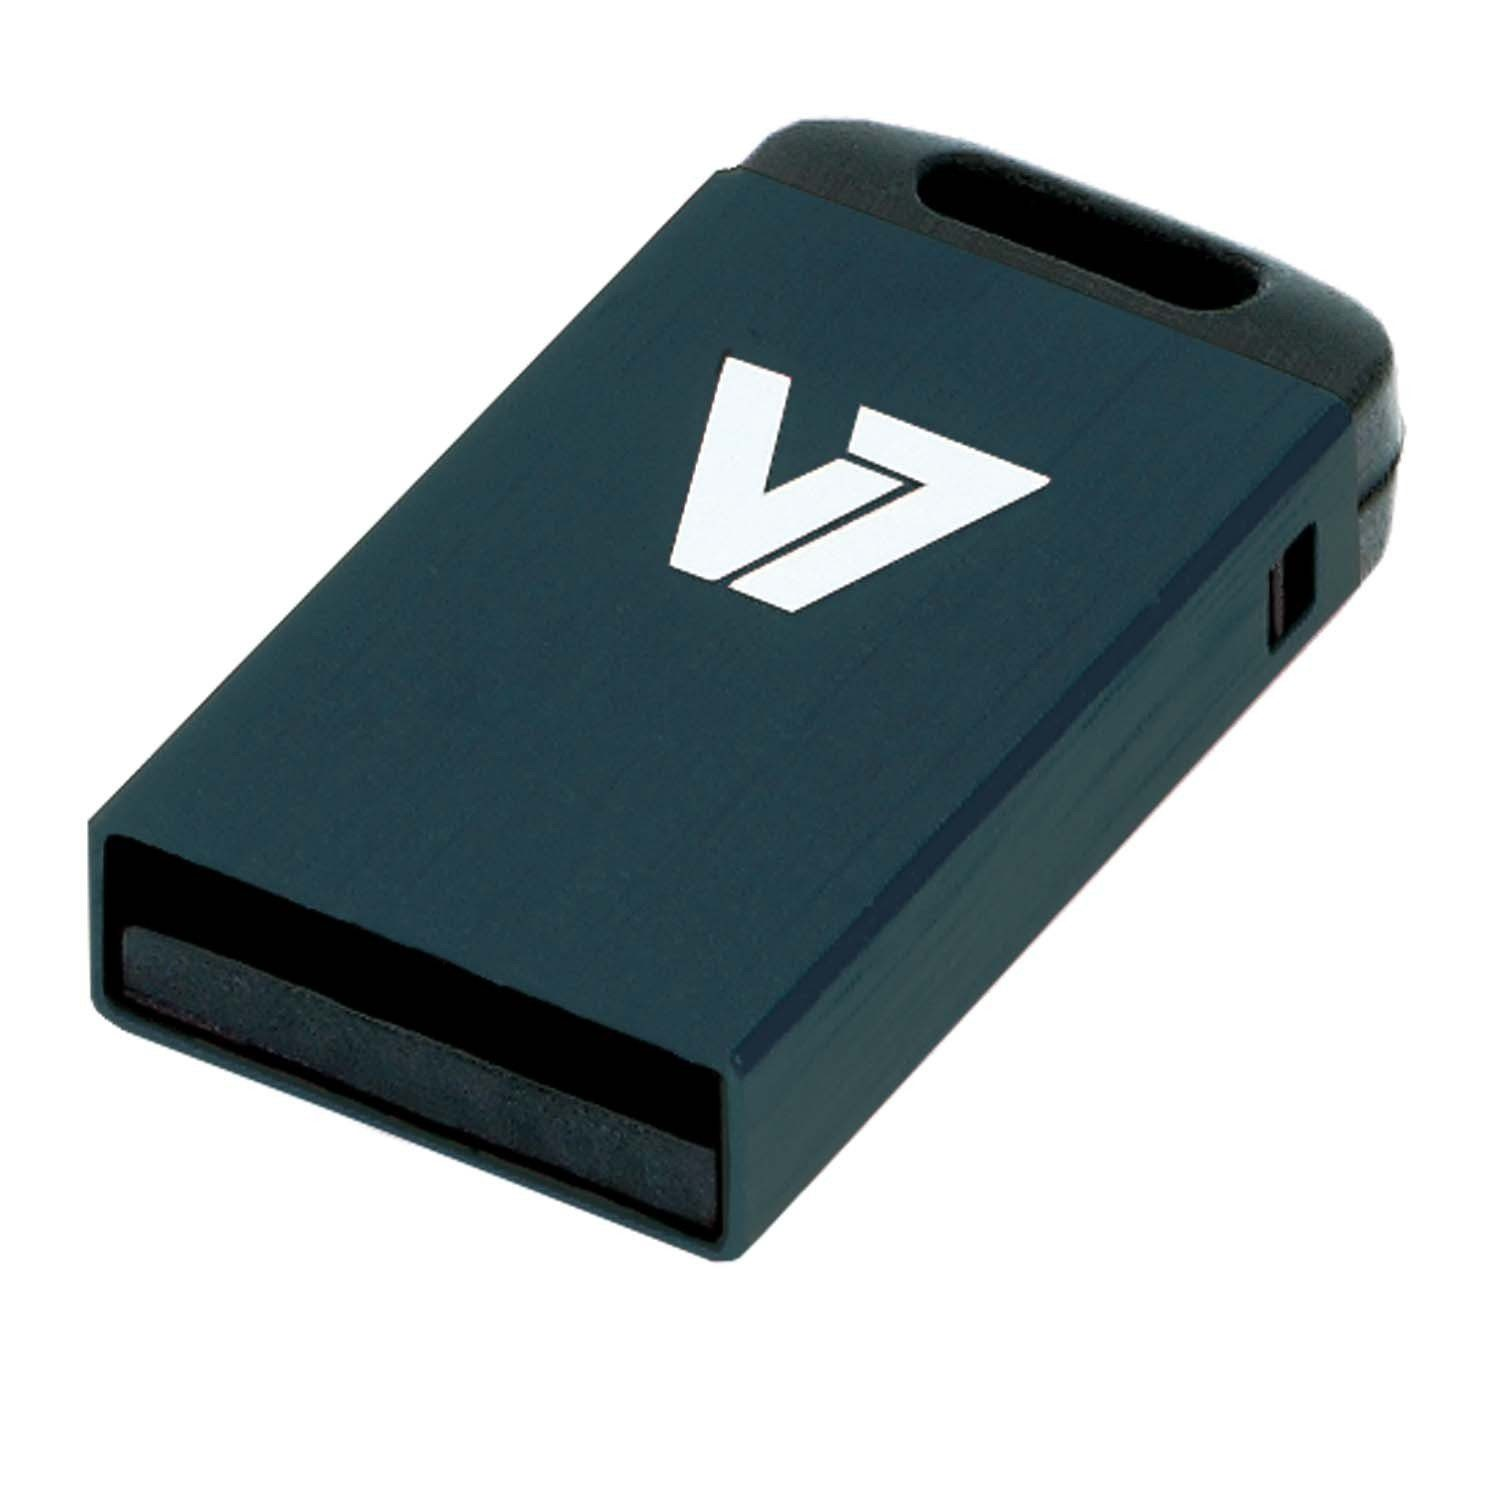 V7 USB-Stick »V7 USB NANO STICK 16GB BLACK«